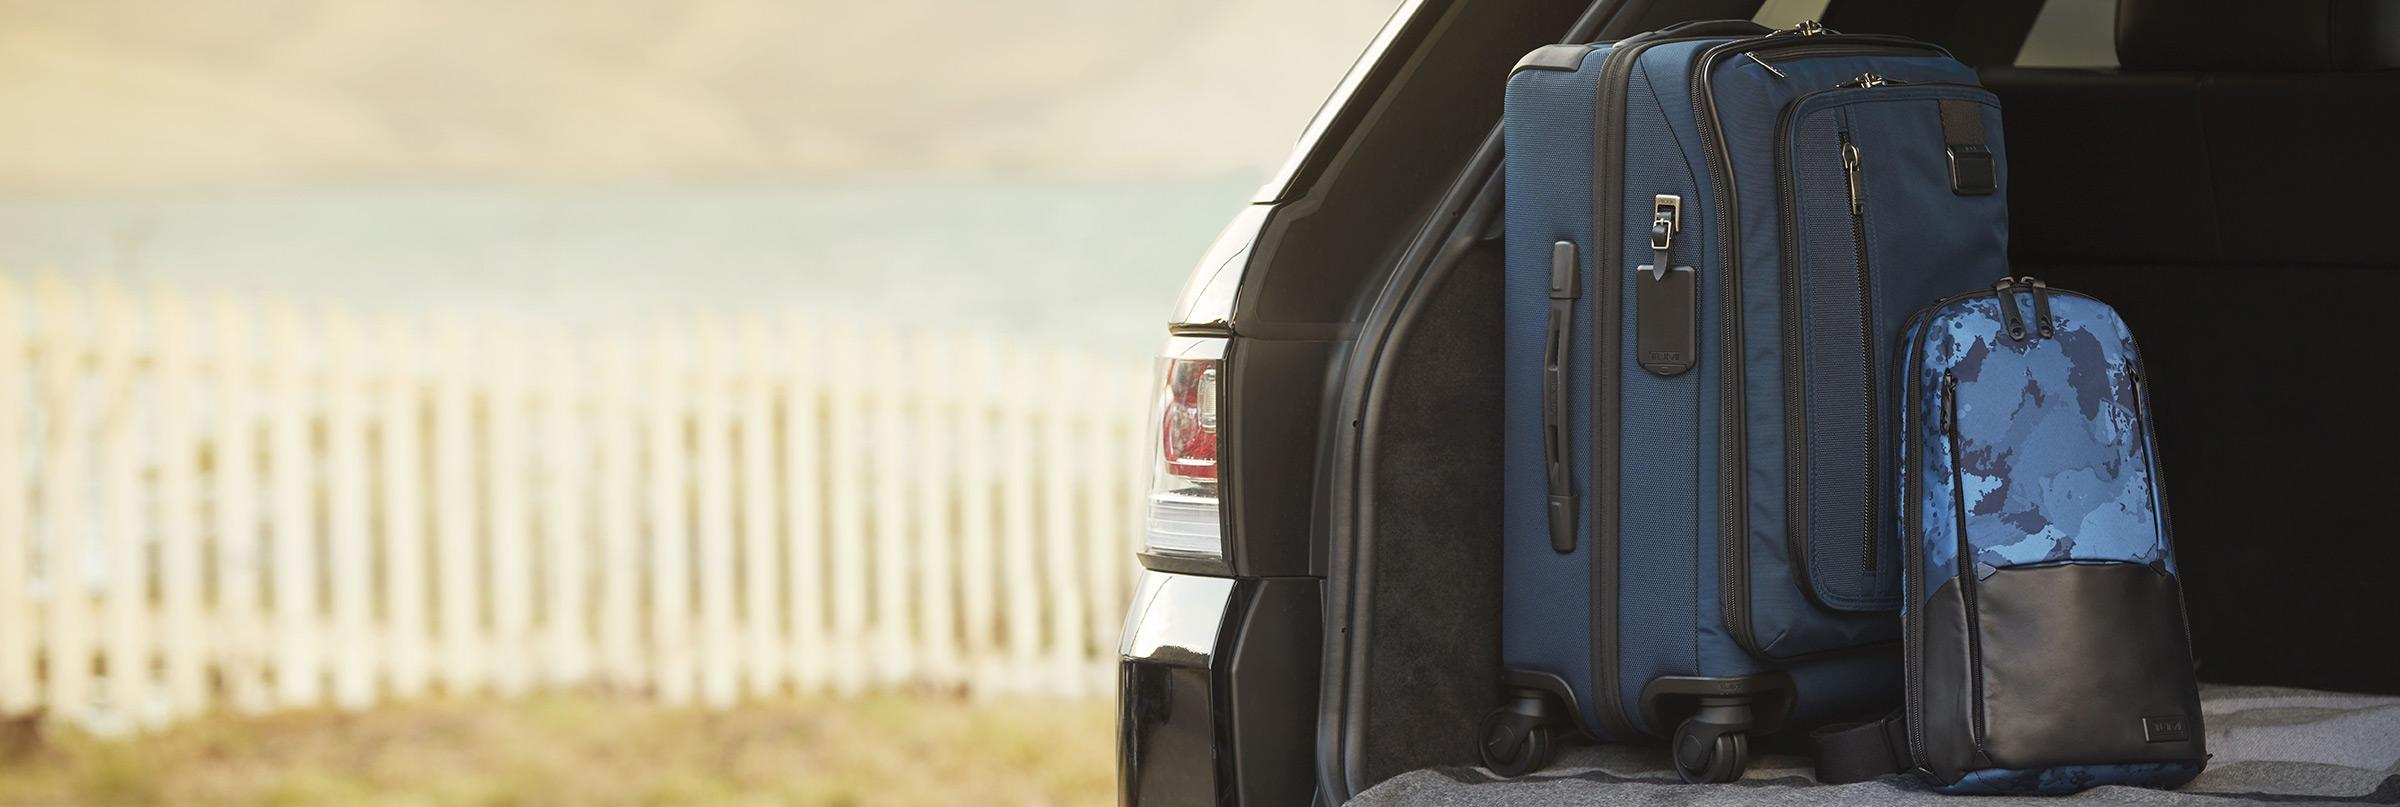 Tumi business cases are ideal for the professional who demands style, durability, and sophistication. Think of a Tumi purchase as a timeless investment that you can carry and use for years to come. For the traveler who's always looking for value and savings, shop our 20% off Tumi sale now!